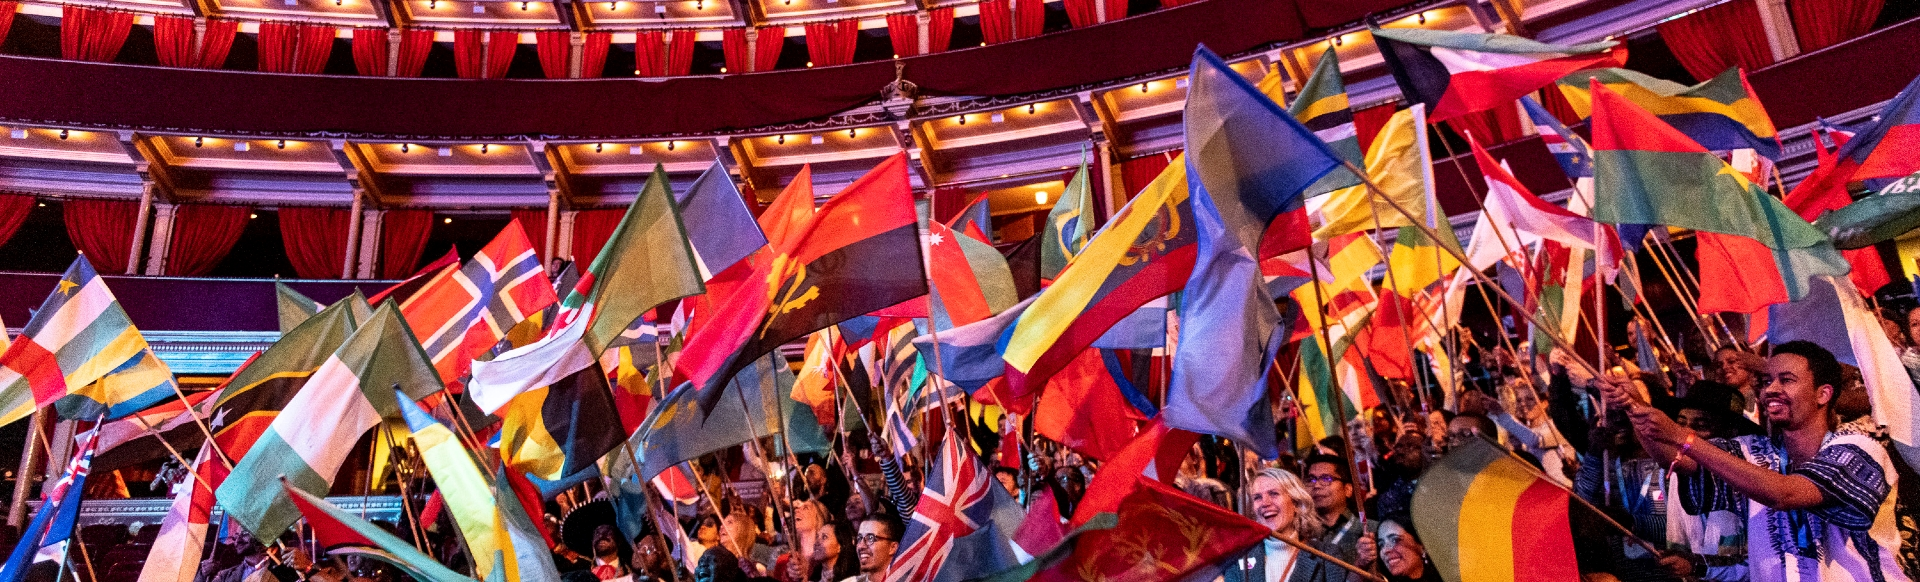 A selection of world flags being waved in the air in the event hall.